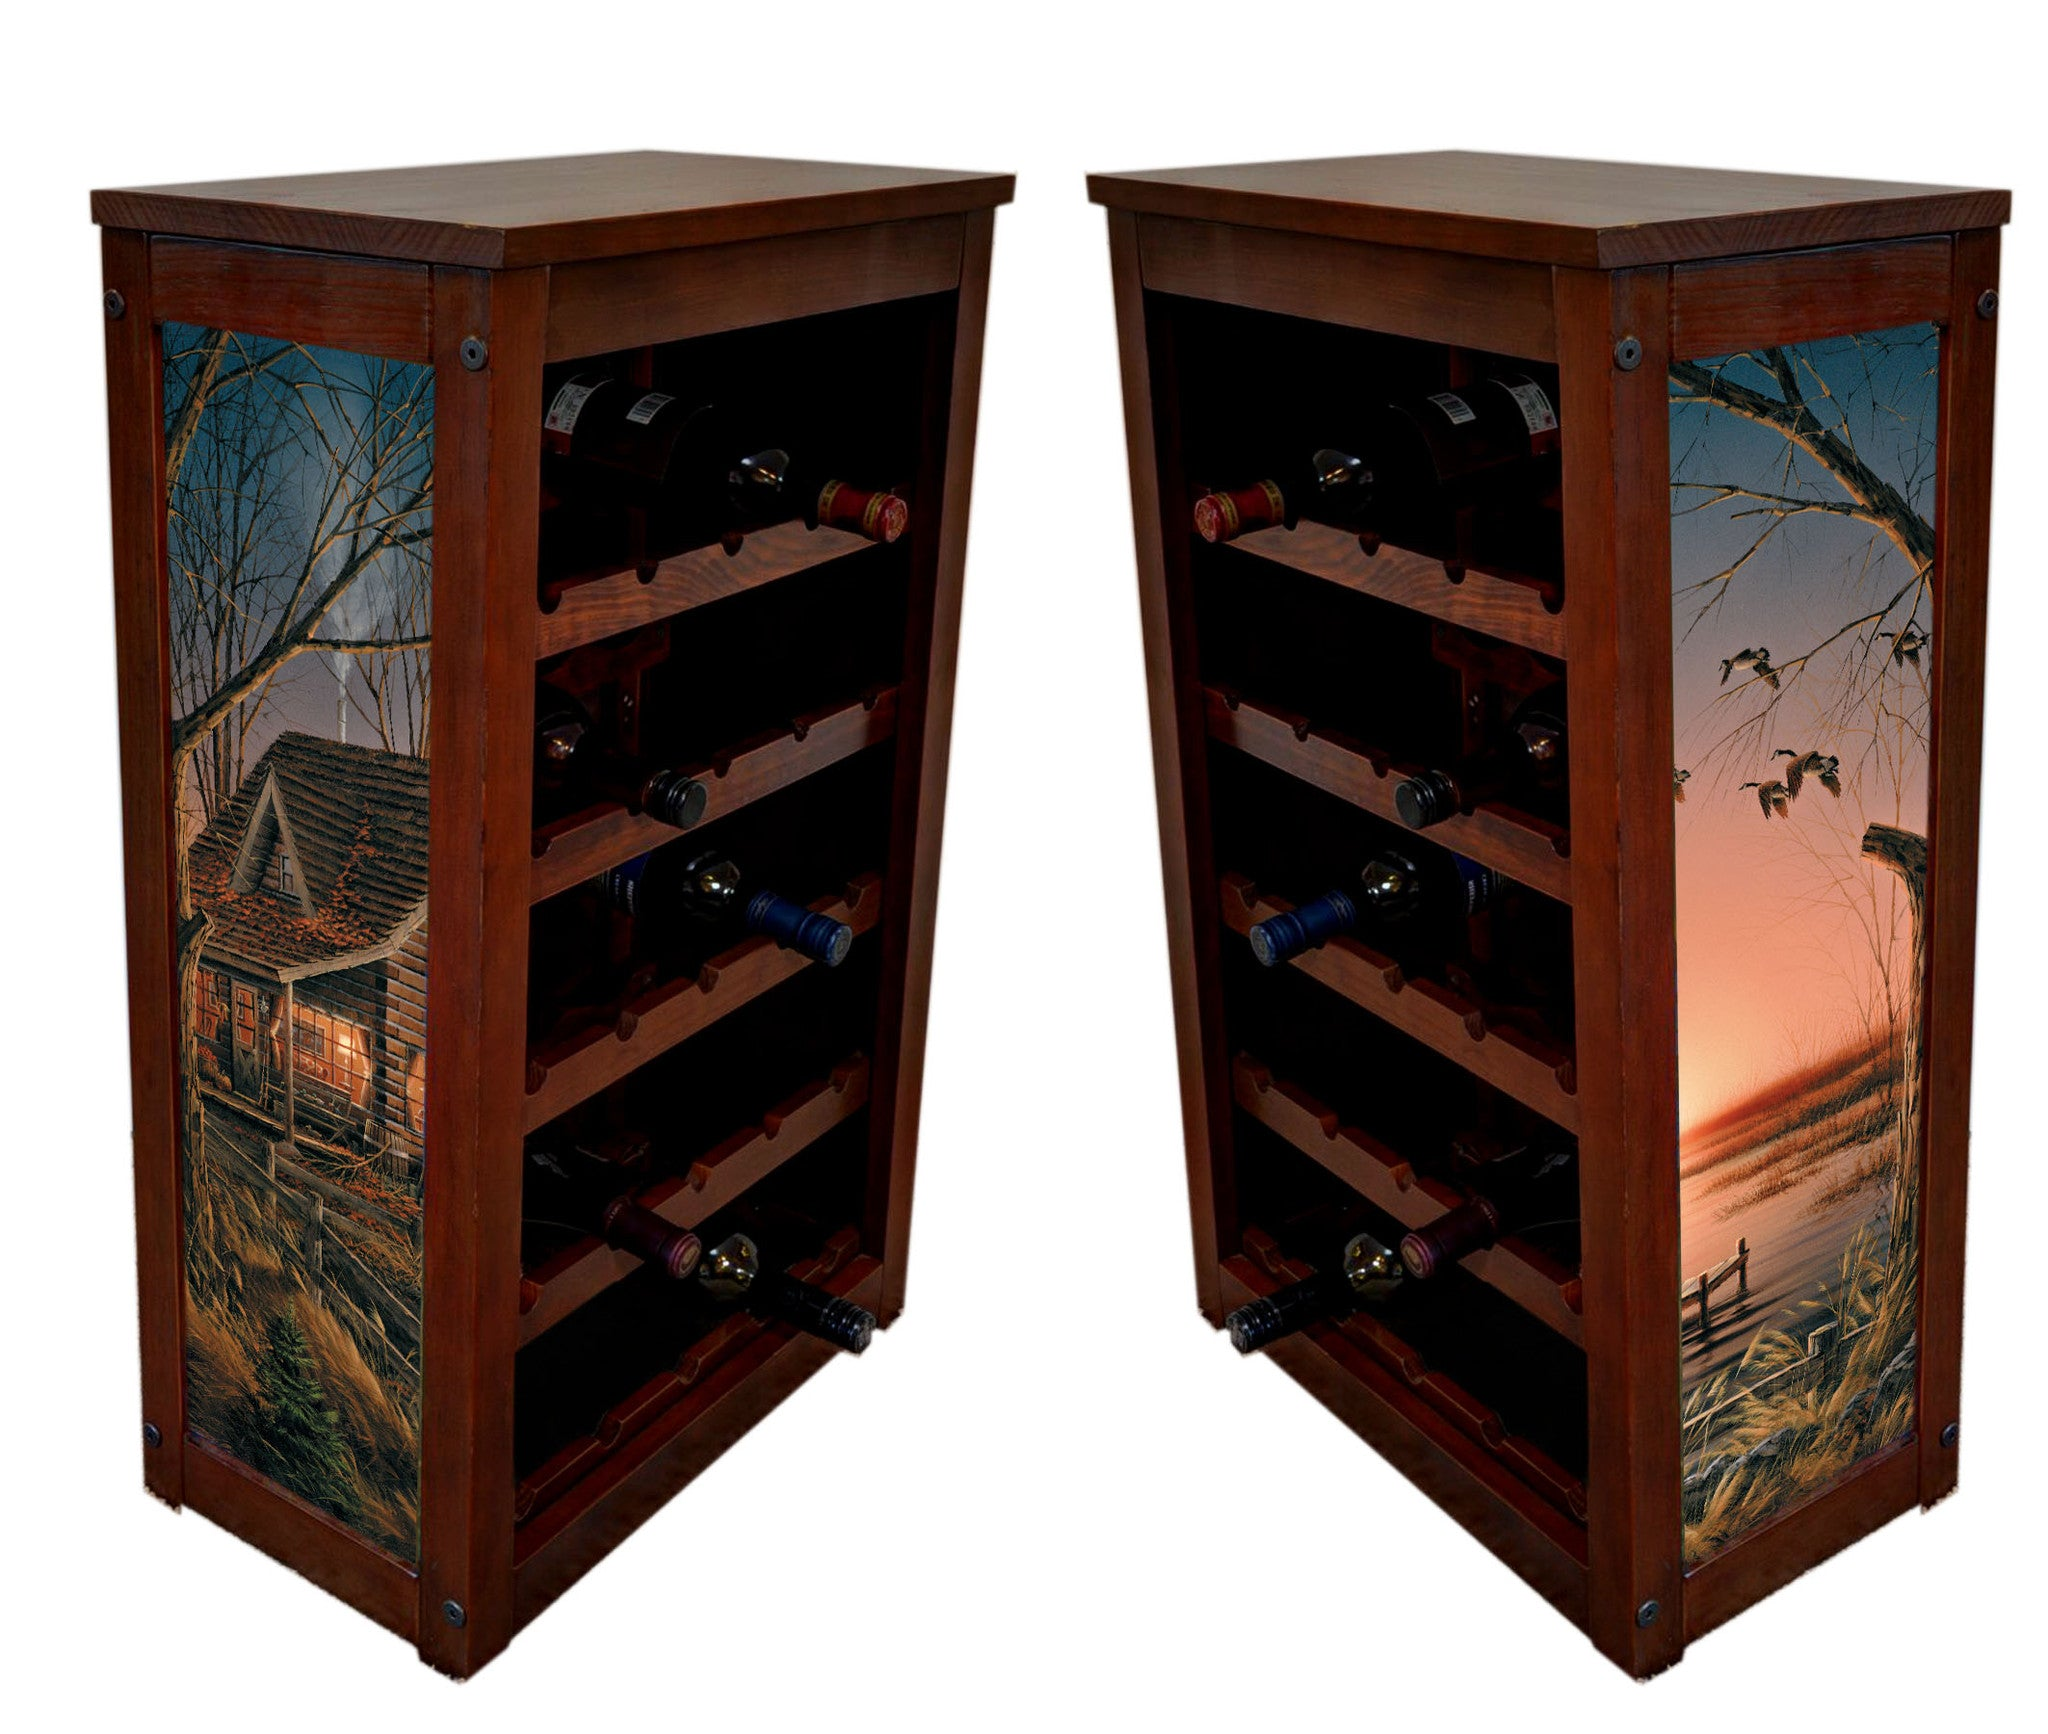 Terry Redlin's Comforts of Home wine cabinet